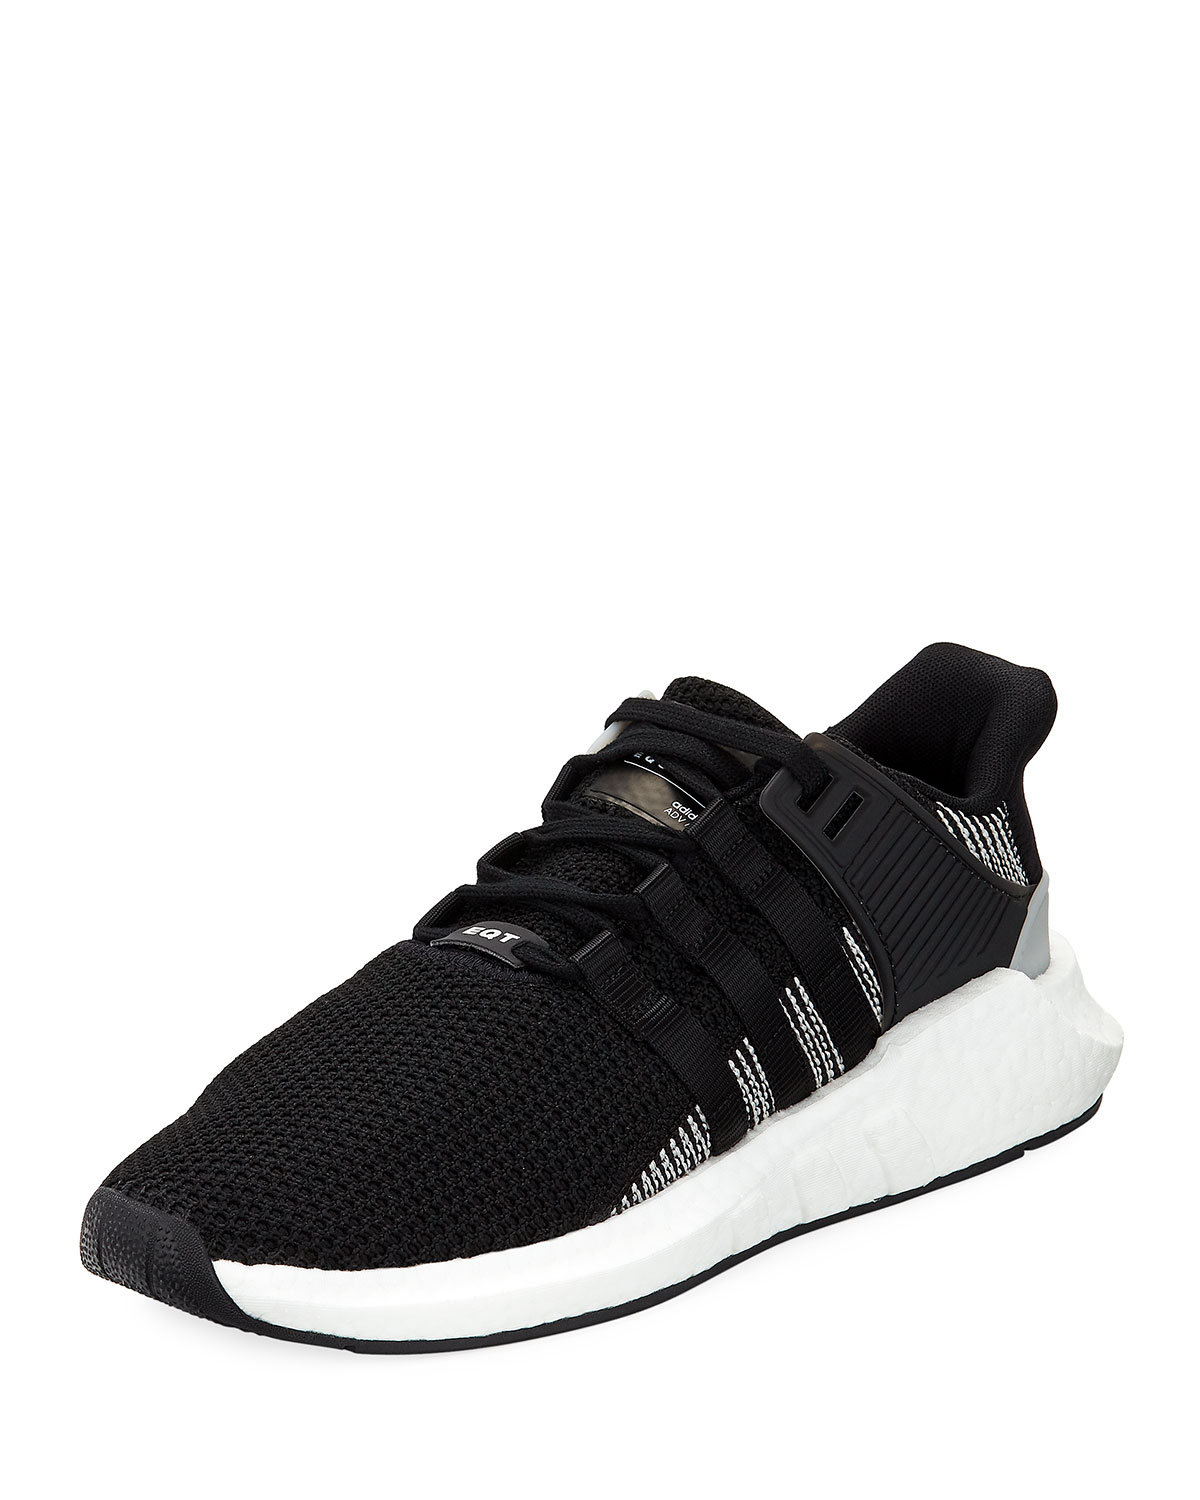 best service 74c00 e8dbc Men's EQT Support ADV Trainer Sneakers, Black